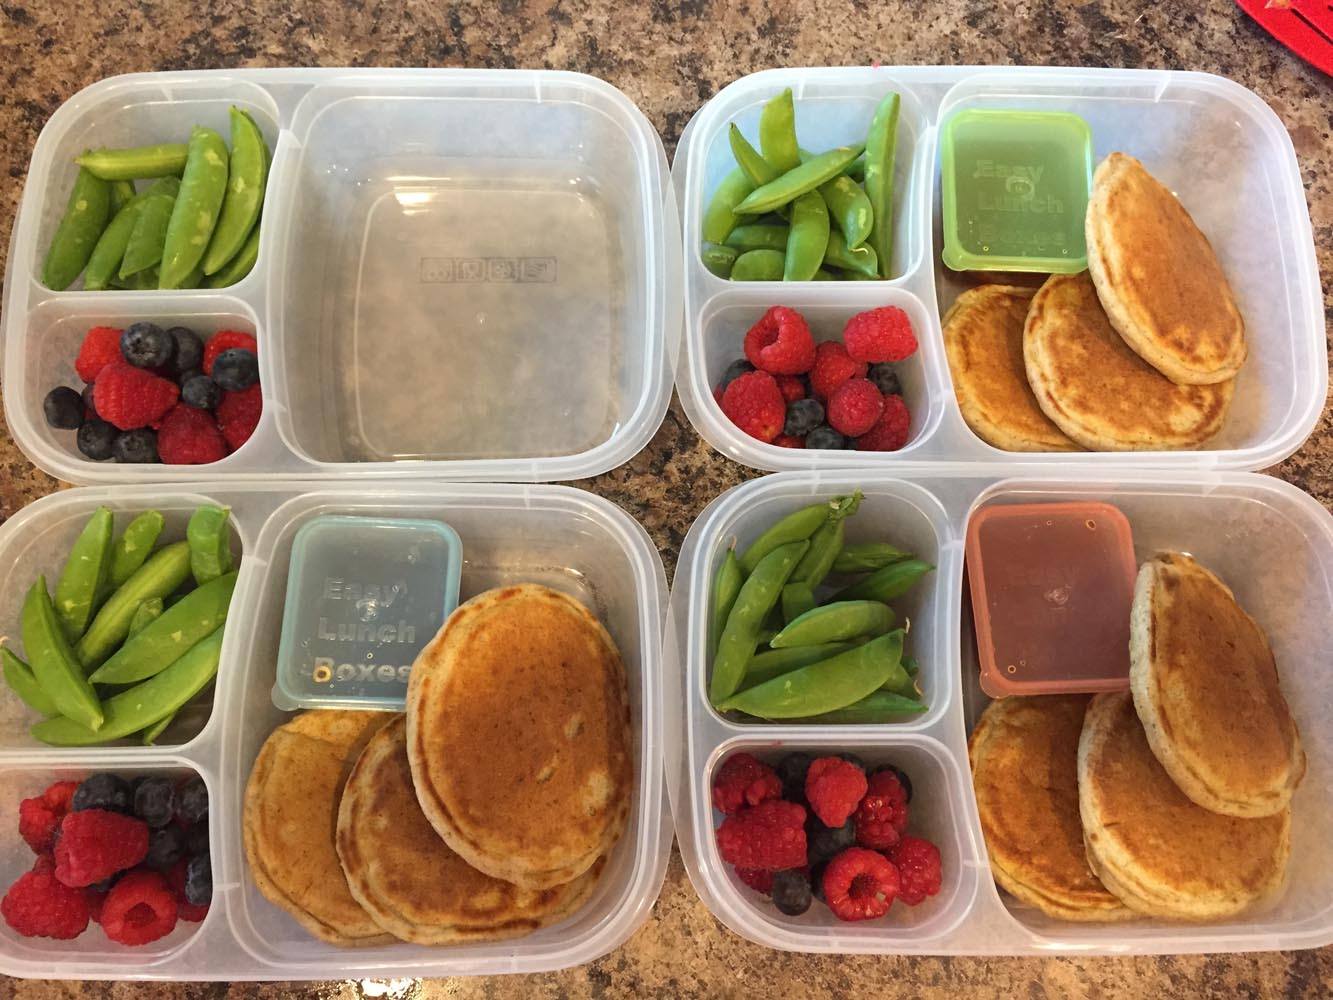 Pancakes, Syrup, Raspberries and Snap Peas